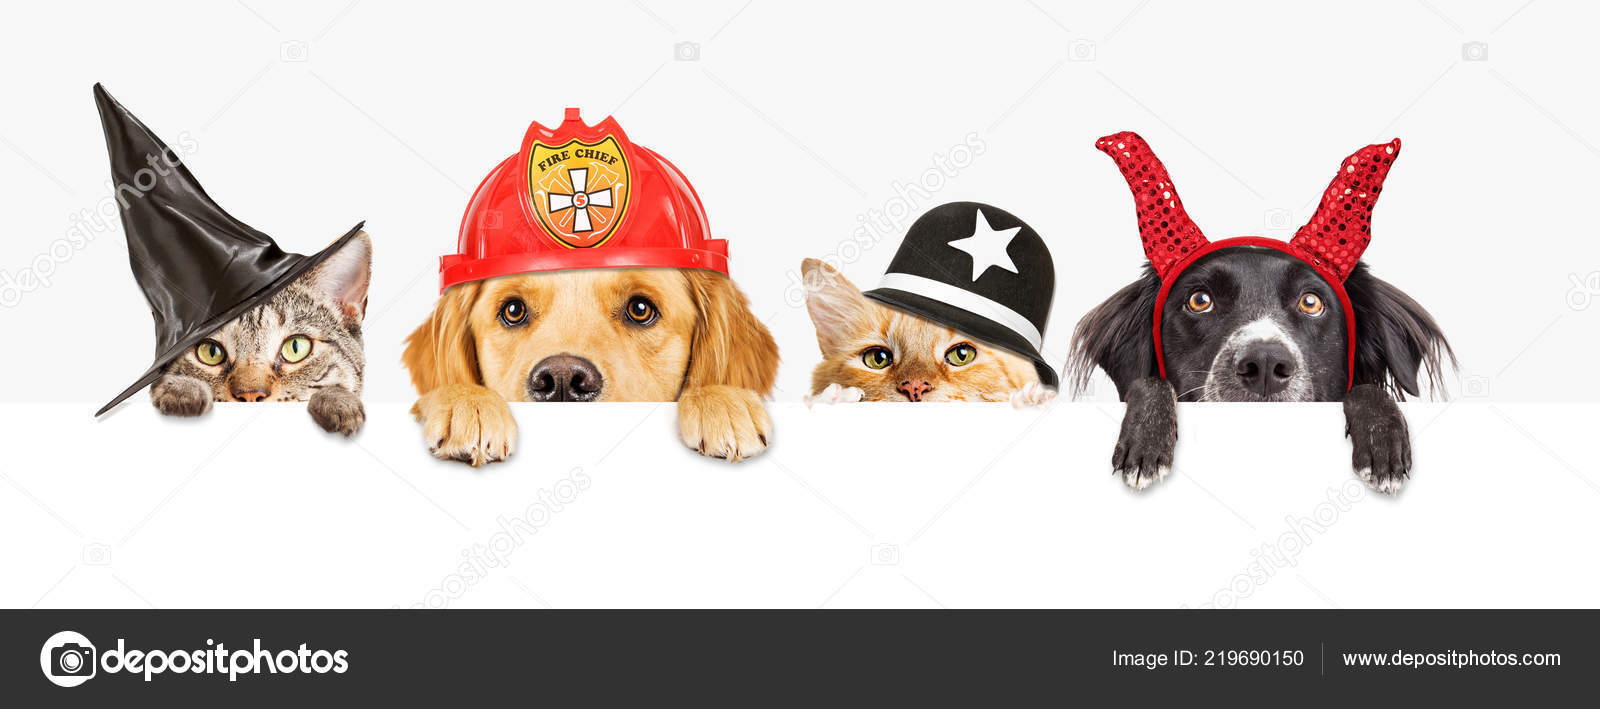 Pictures Halloween Dogs Row Cats Dogs Wearing Halloween Costumes Hanging Blank White Banner Stock Photo C Adogslifephoto 219690150